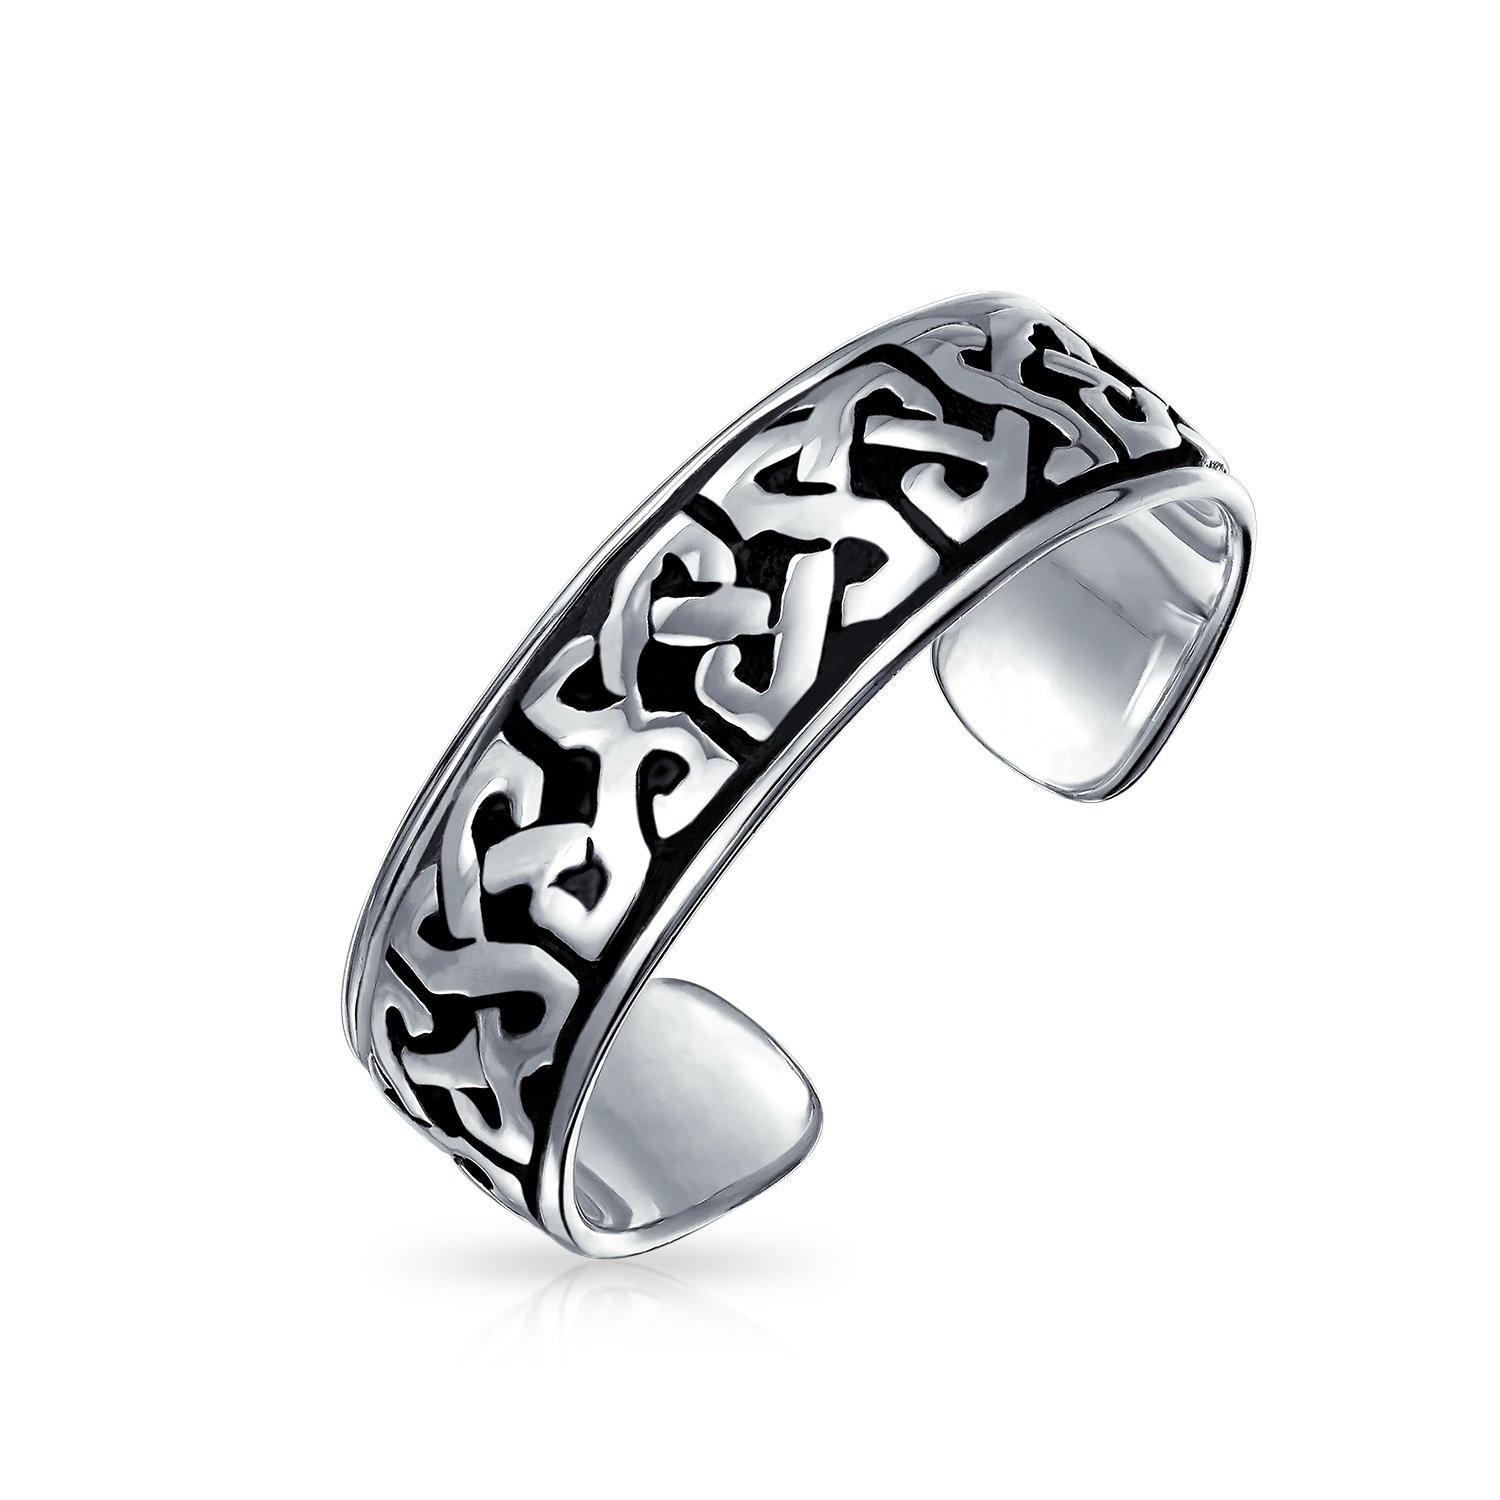 Bling Jewelry Celtic Knot Mid Finger Ring 925 Silver Adjustable Toe Rings PMR-R11050